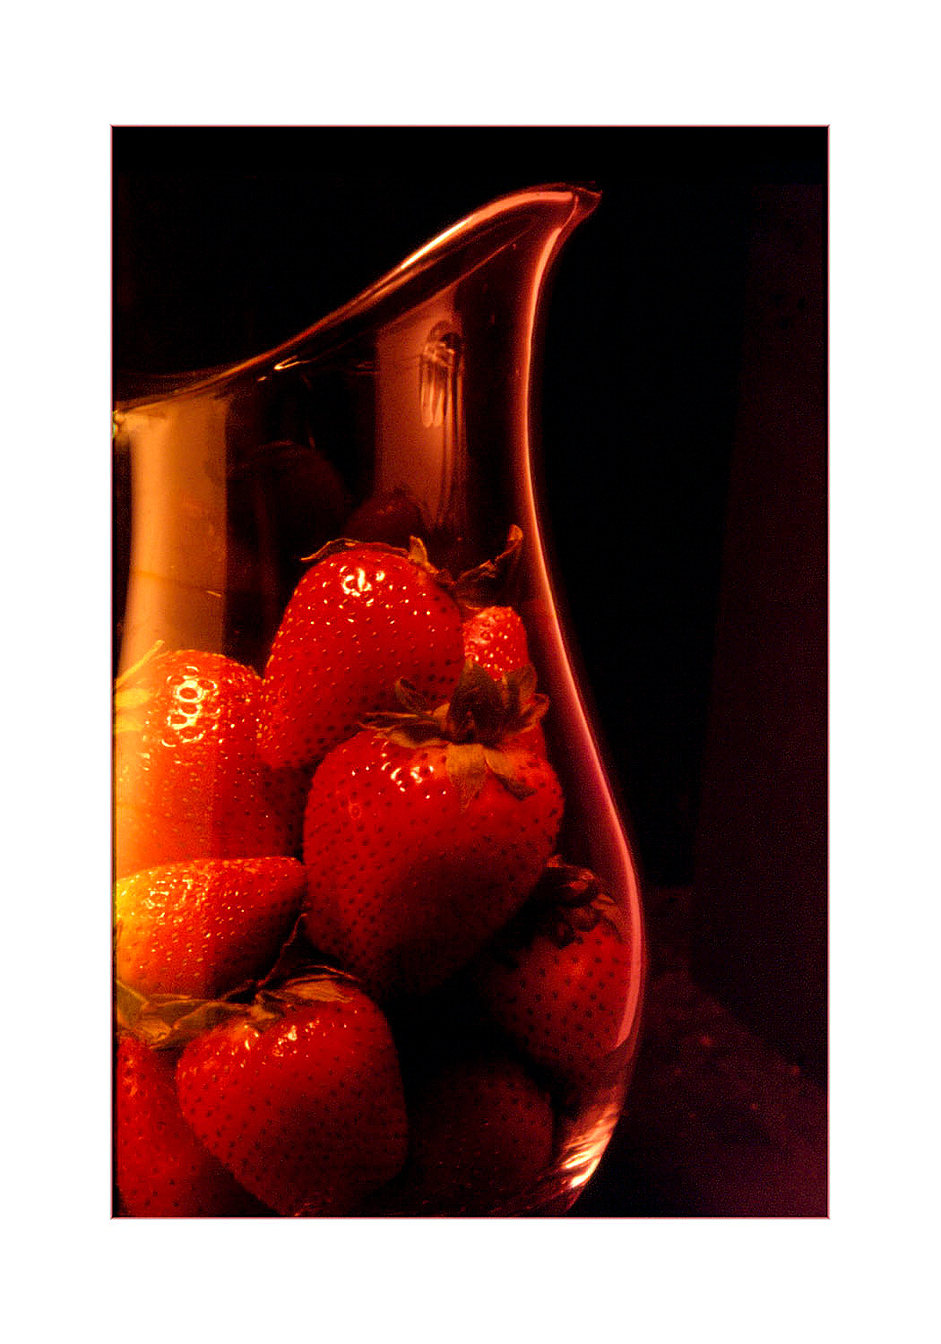 Studio Still: Strwberries in Pitcher.  © High Cascade Studios